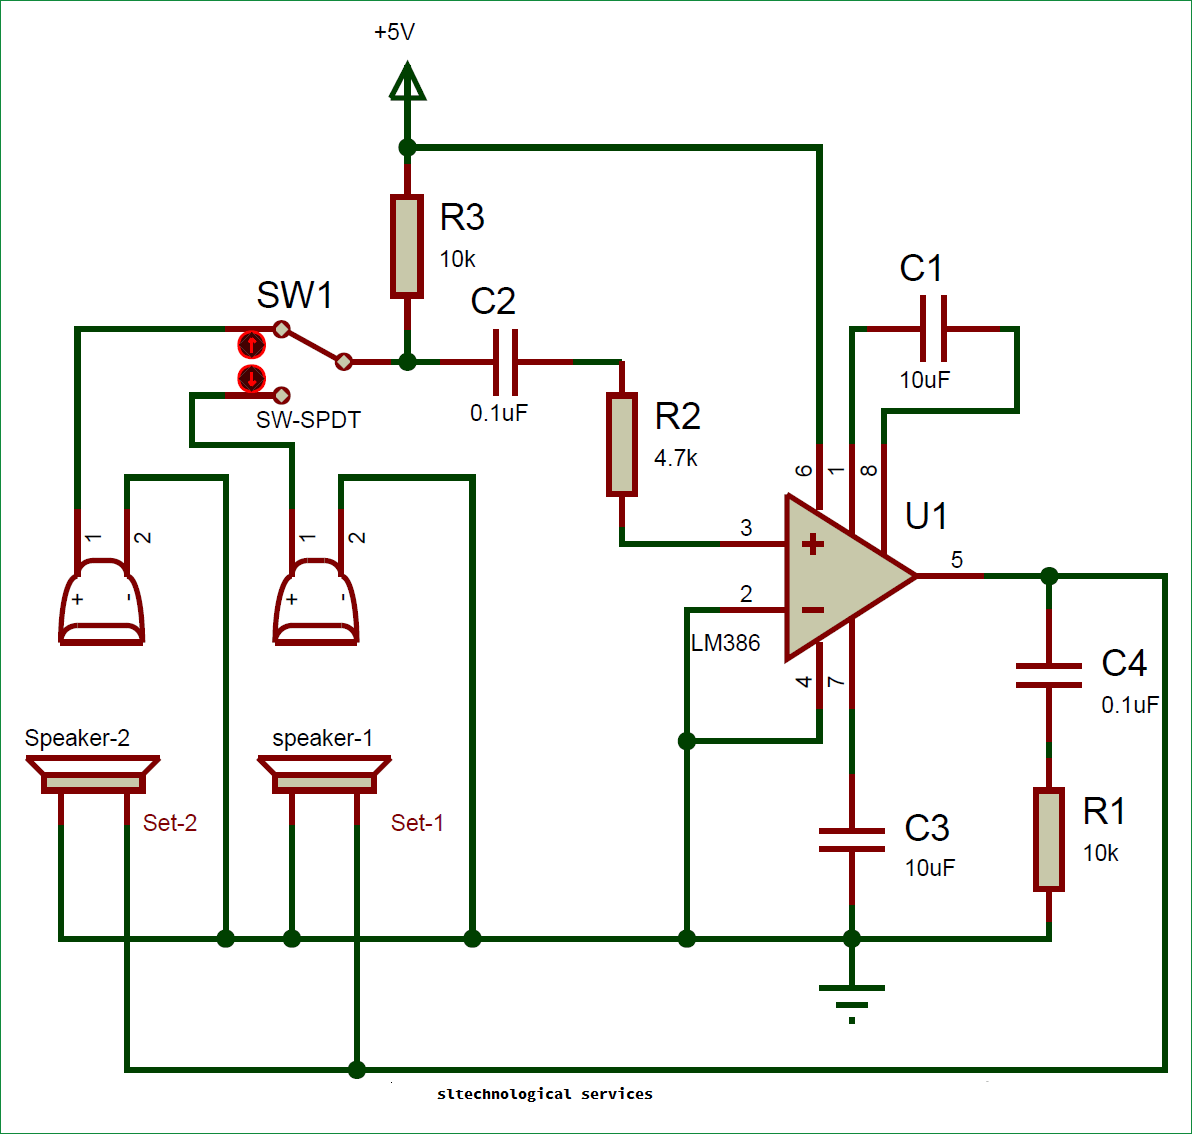 Simple Two Way Intercom Circuit Sl Technological Services The Breadboard Schematic Of Above Is Shown Below As You Can See Very And Be Easily Built Over A Main Concept Behind Use Lm386 Audio Amplifier